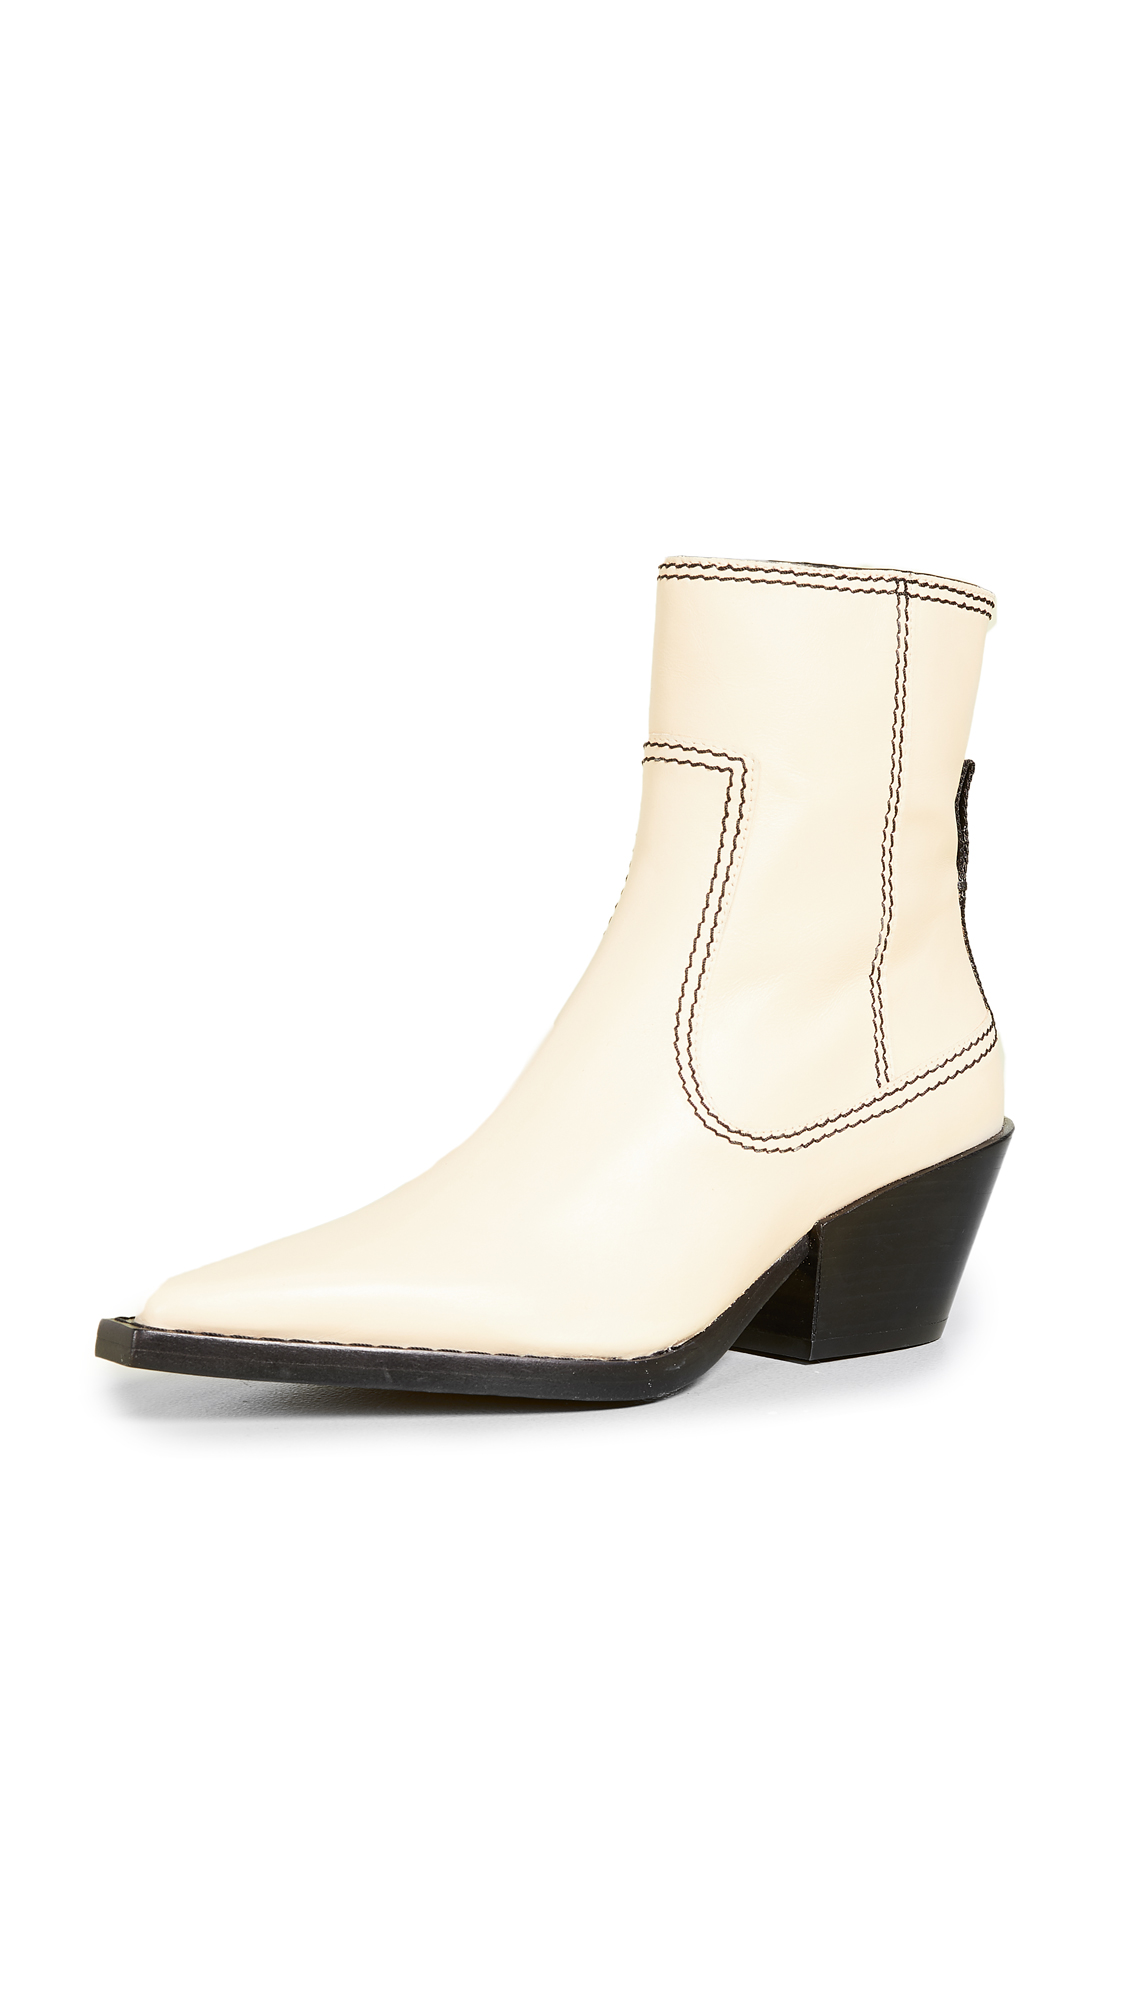 Joseph Rodeo Ankle Boots - Ecru